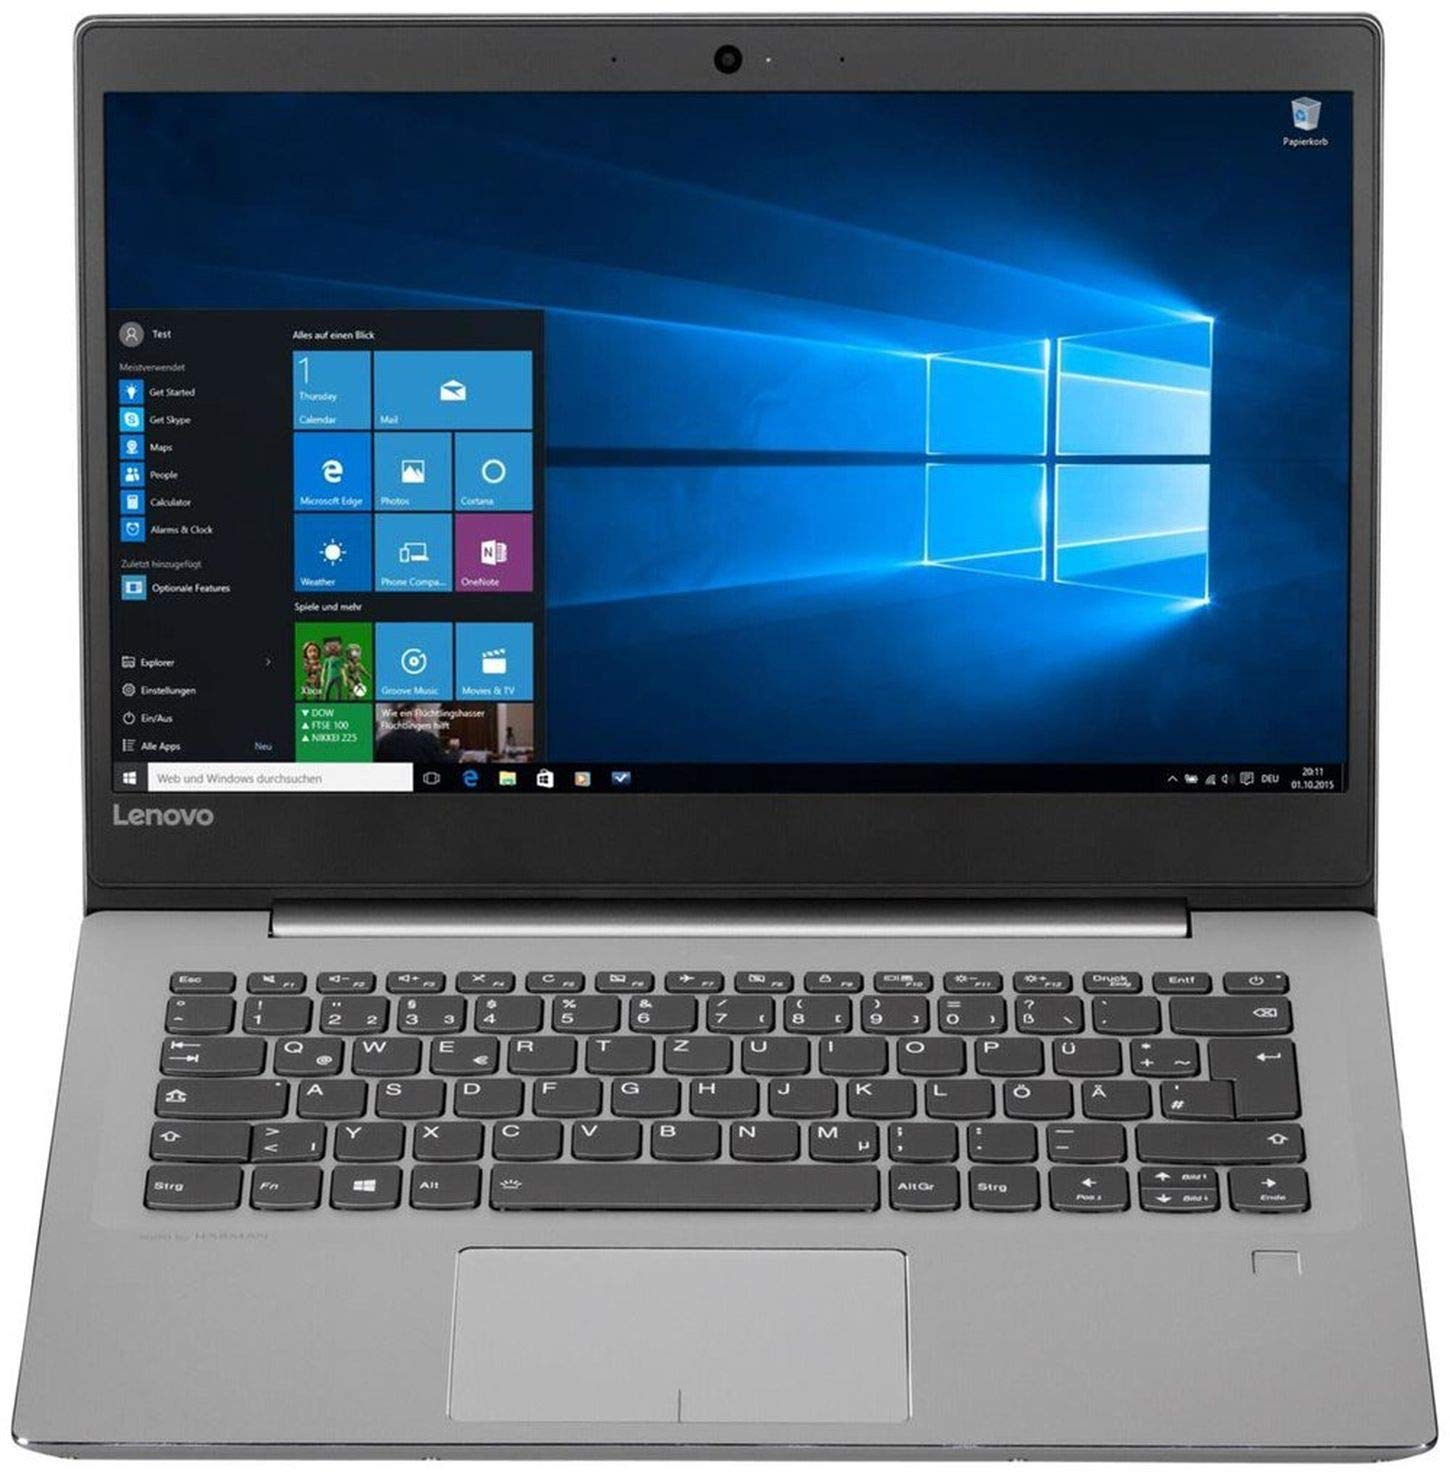 Lenovo IdeaPad 520s de 14ikb (81bl005usp) 81bl Core i5 - 8250u 1.6 GHz, 8 GB de RAM, 256 GB SSD, Windows 10 Home, Mineral Gray, Spanish Keypad & Software: ...